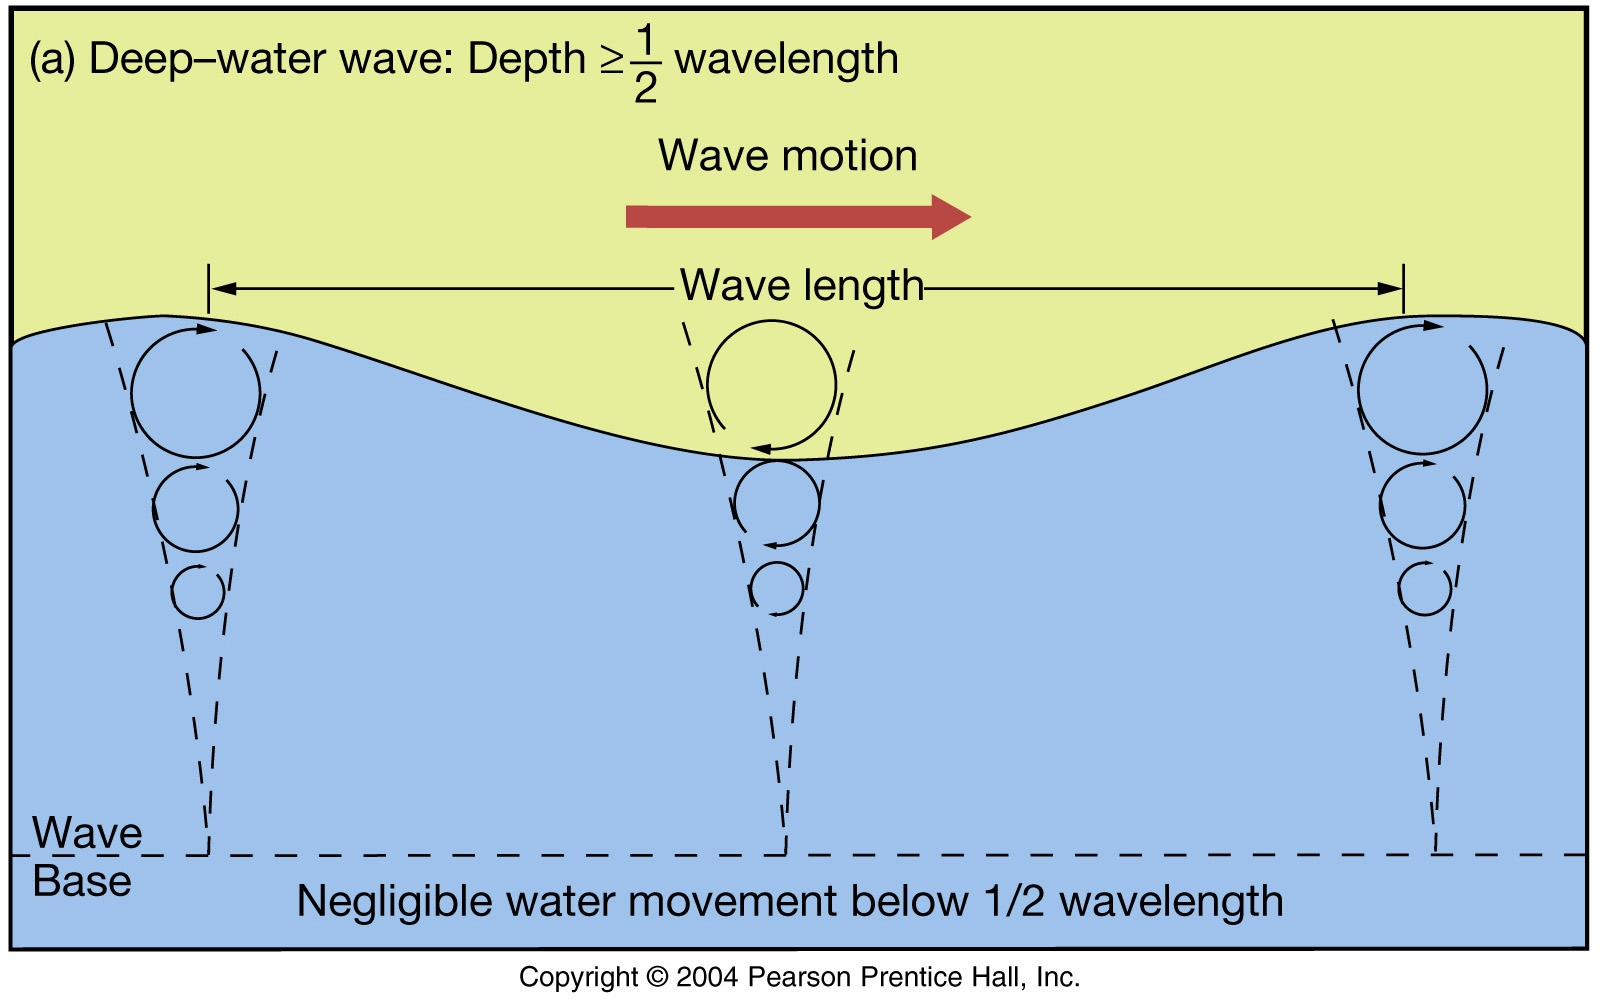 Ocean Wave Diagram No Words Wiring Diagrams Diode Transistor Logicdtl Circuits By Scu20129 A Tsunami Is Really Tidal Except It Isn T Earth Science Rh Earthsciencesociety Com